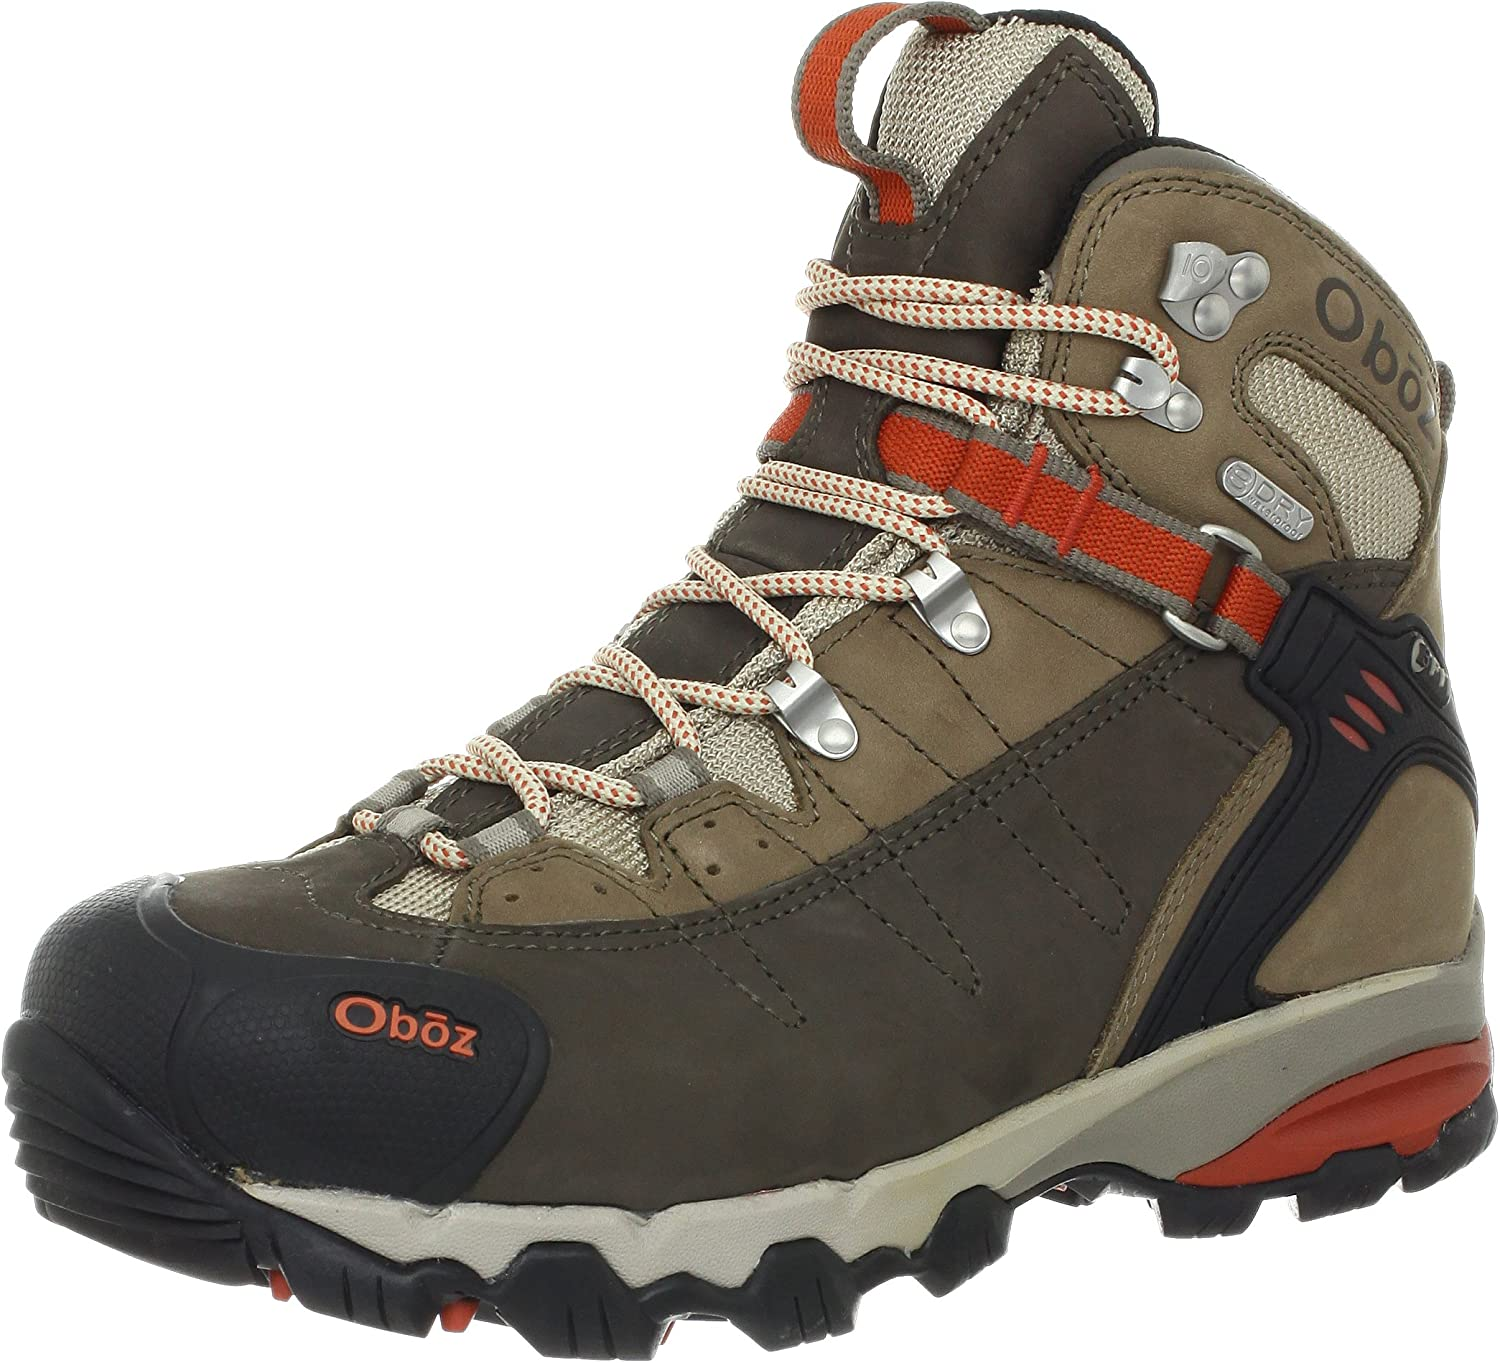 Wind River II BDry Backpacking Boot